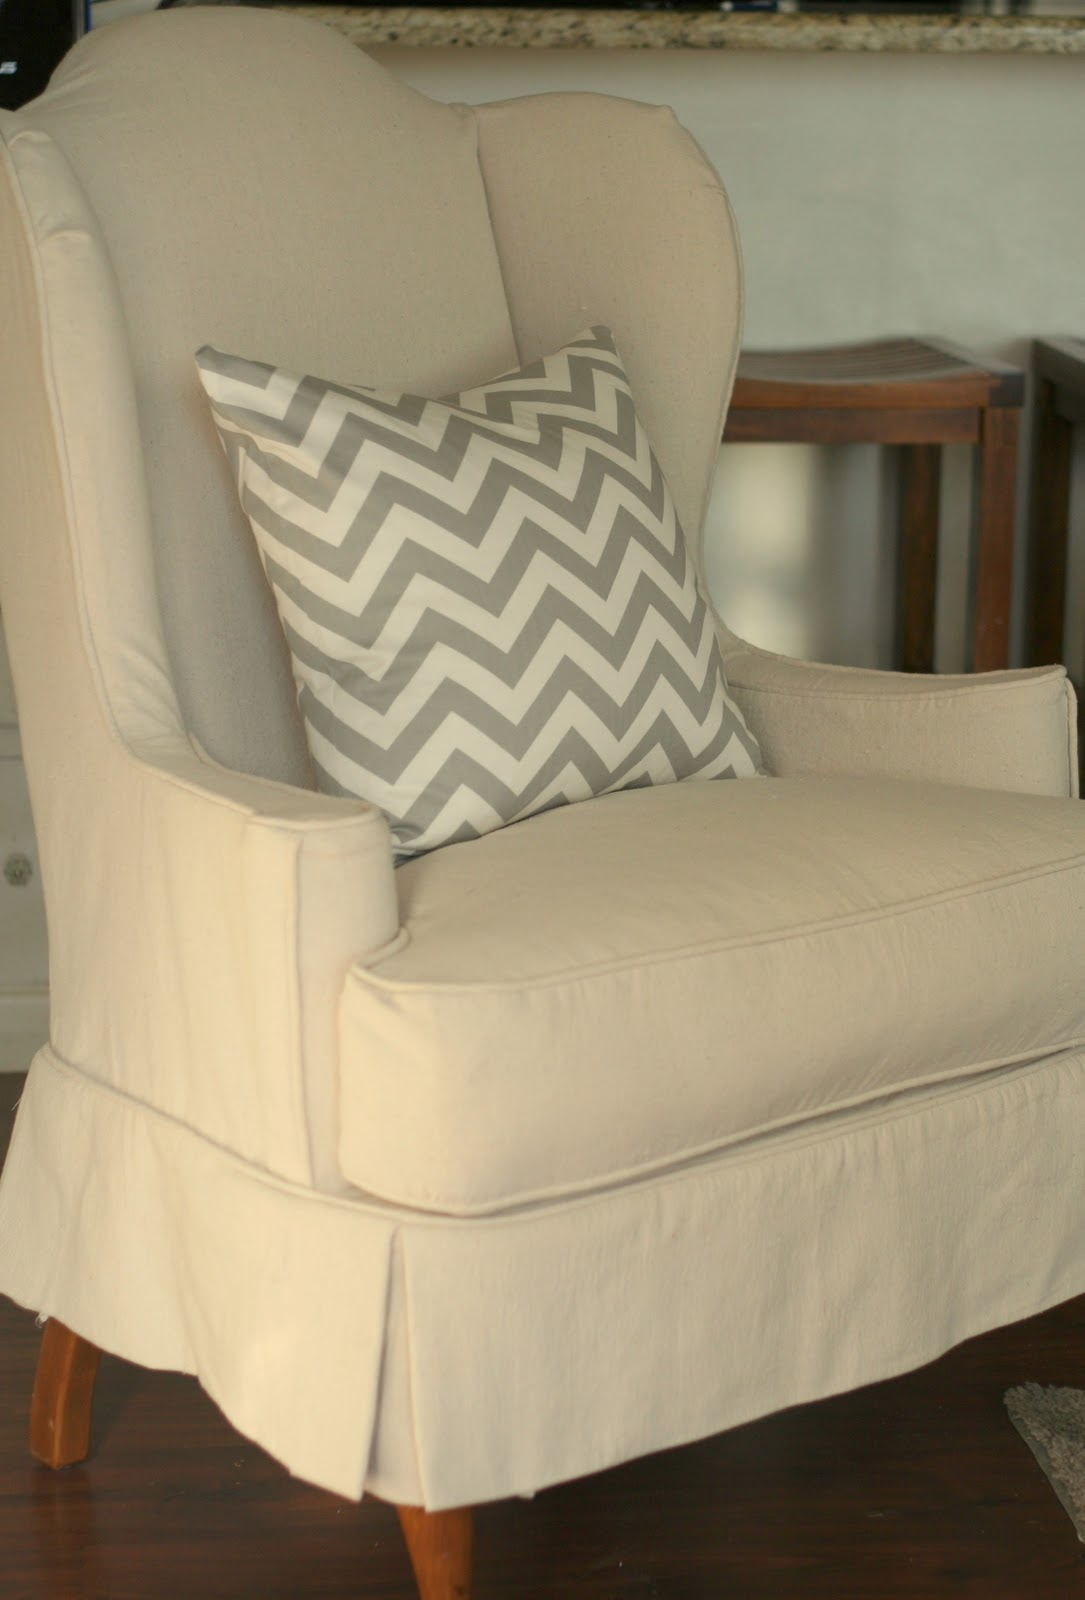 How To Make Slipcover For Wingback Chair Handmade Adirondack Chairs Custom Slipcovers By Shelley Drop Cloth